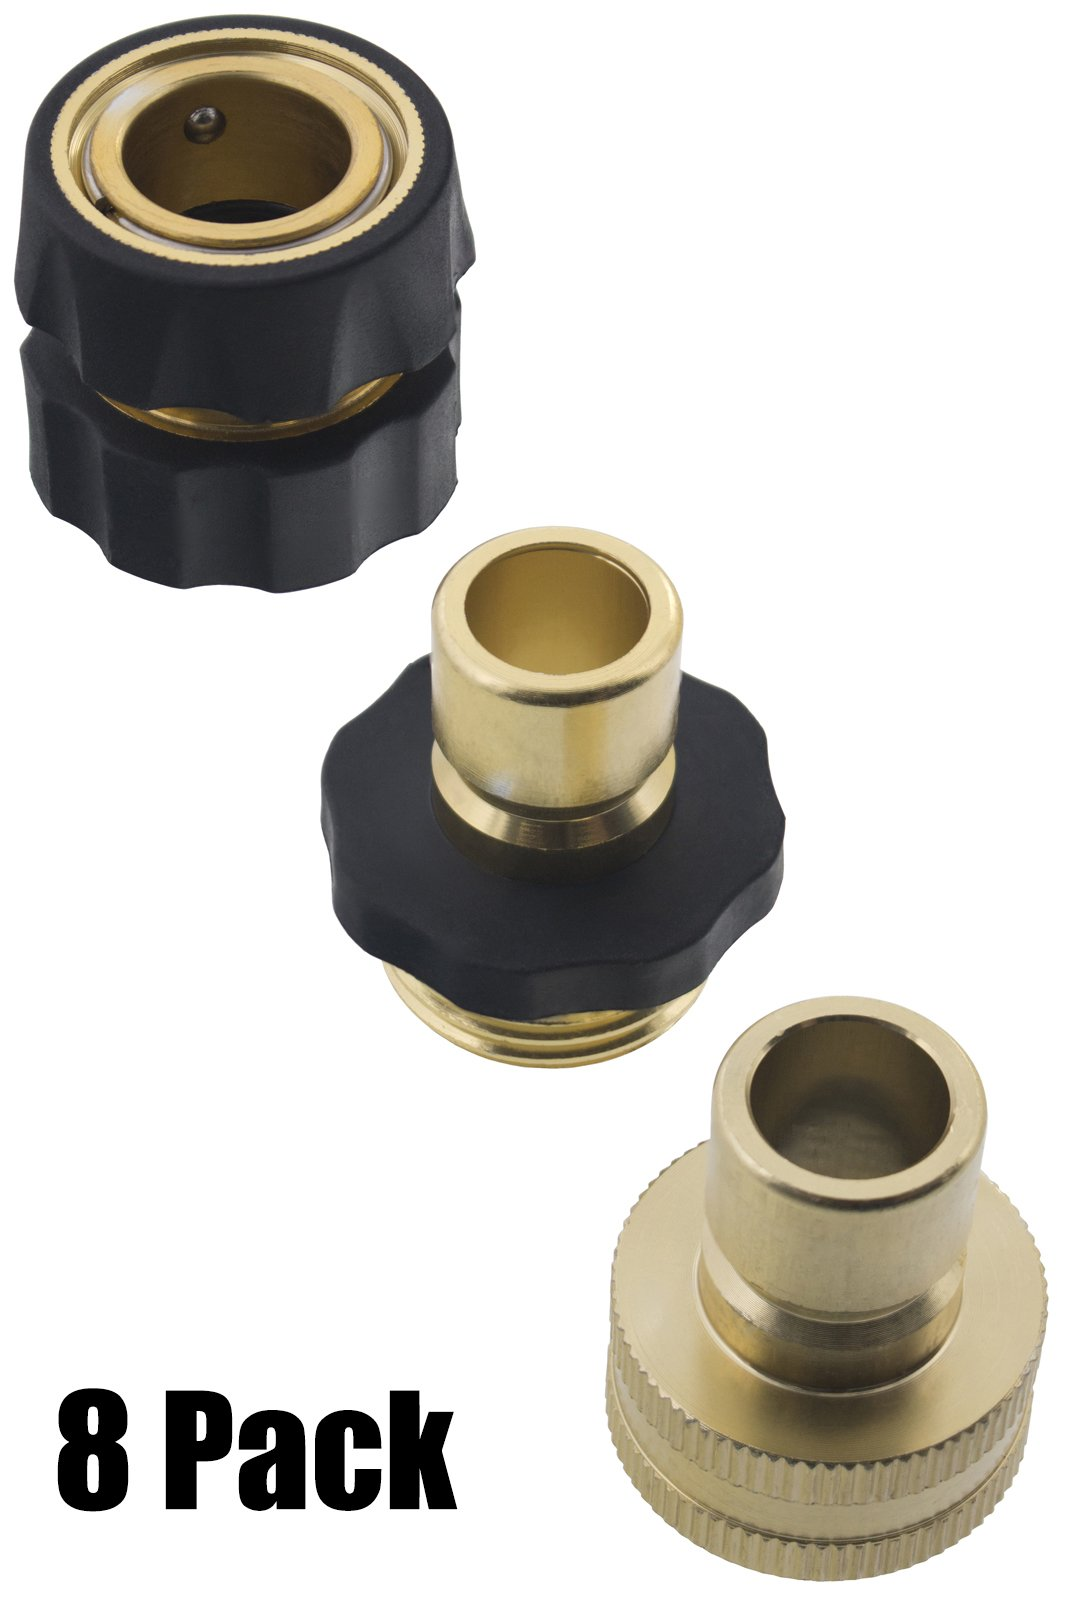 Erie Tools 8 Garden Hose Pressure Washer Quick Connector Kit with Male Female Connections and Nylon Grip